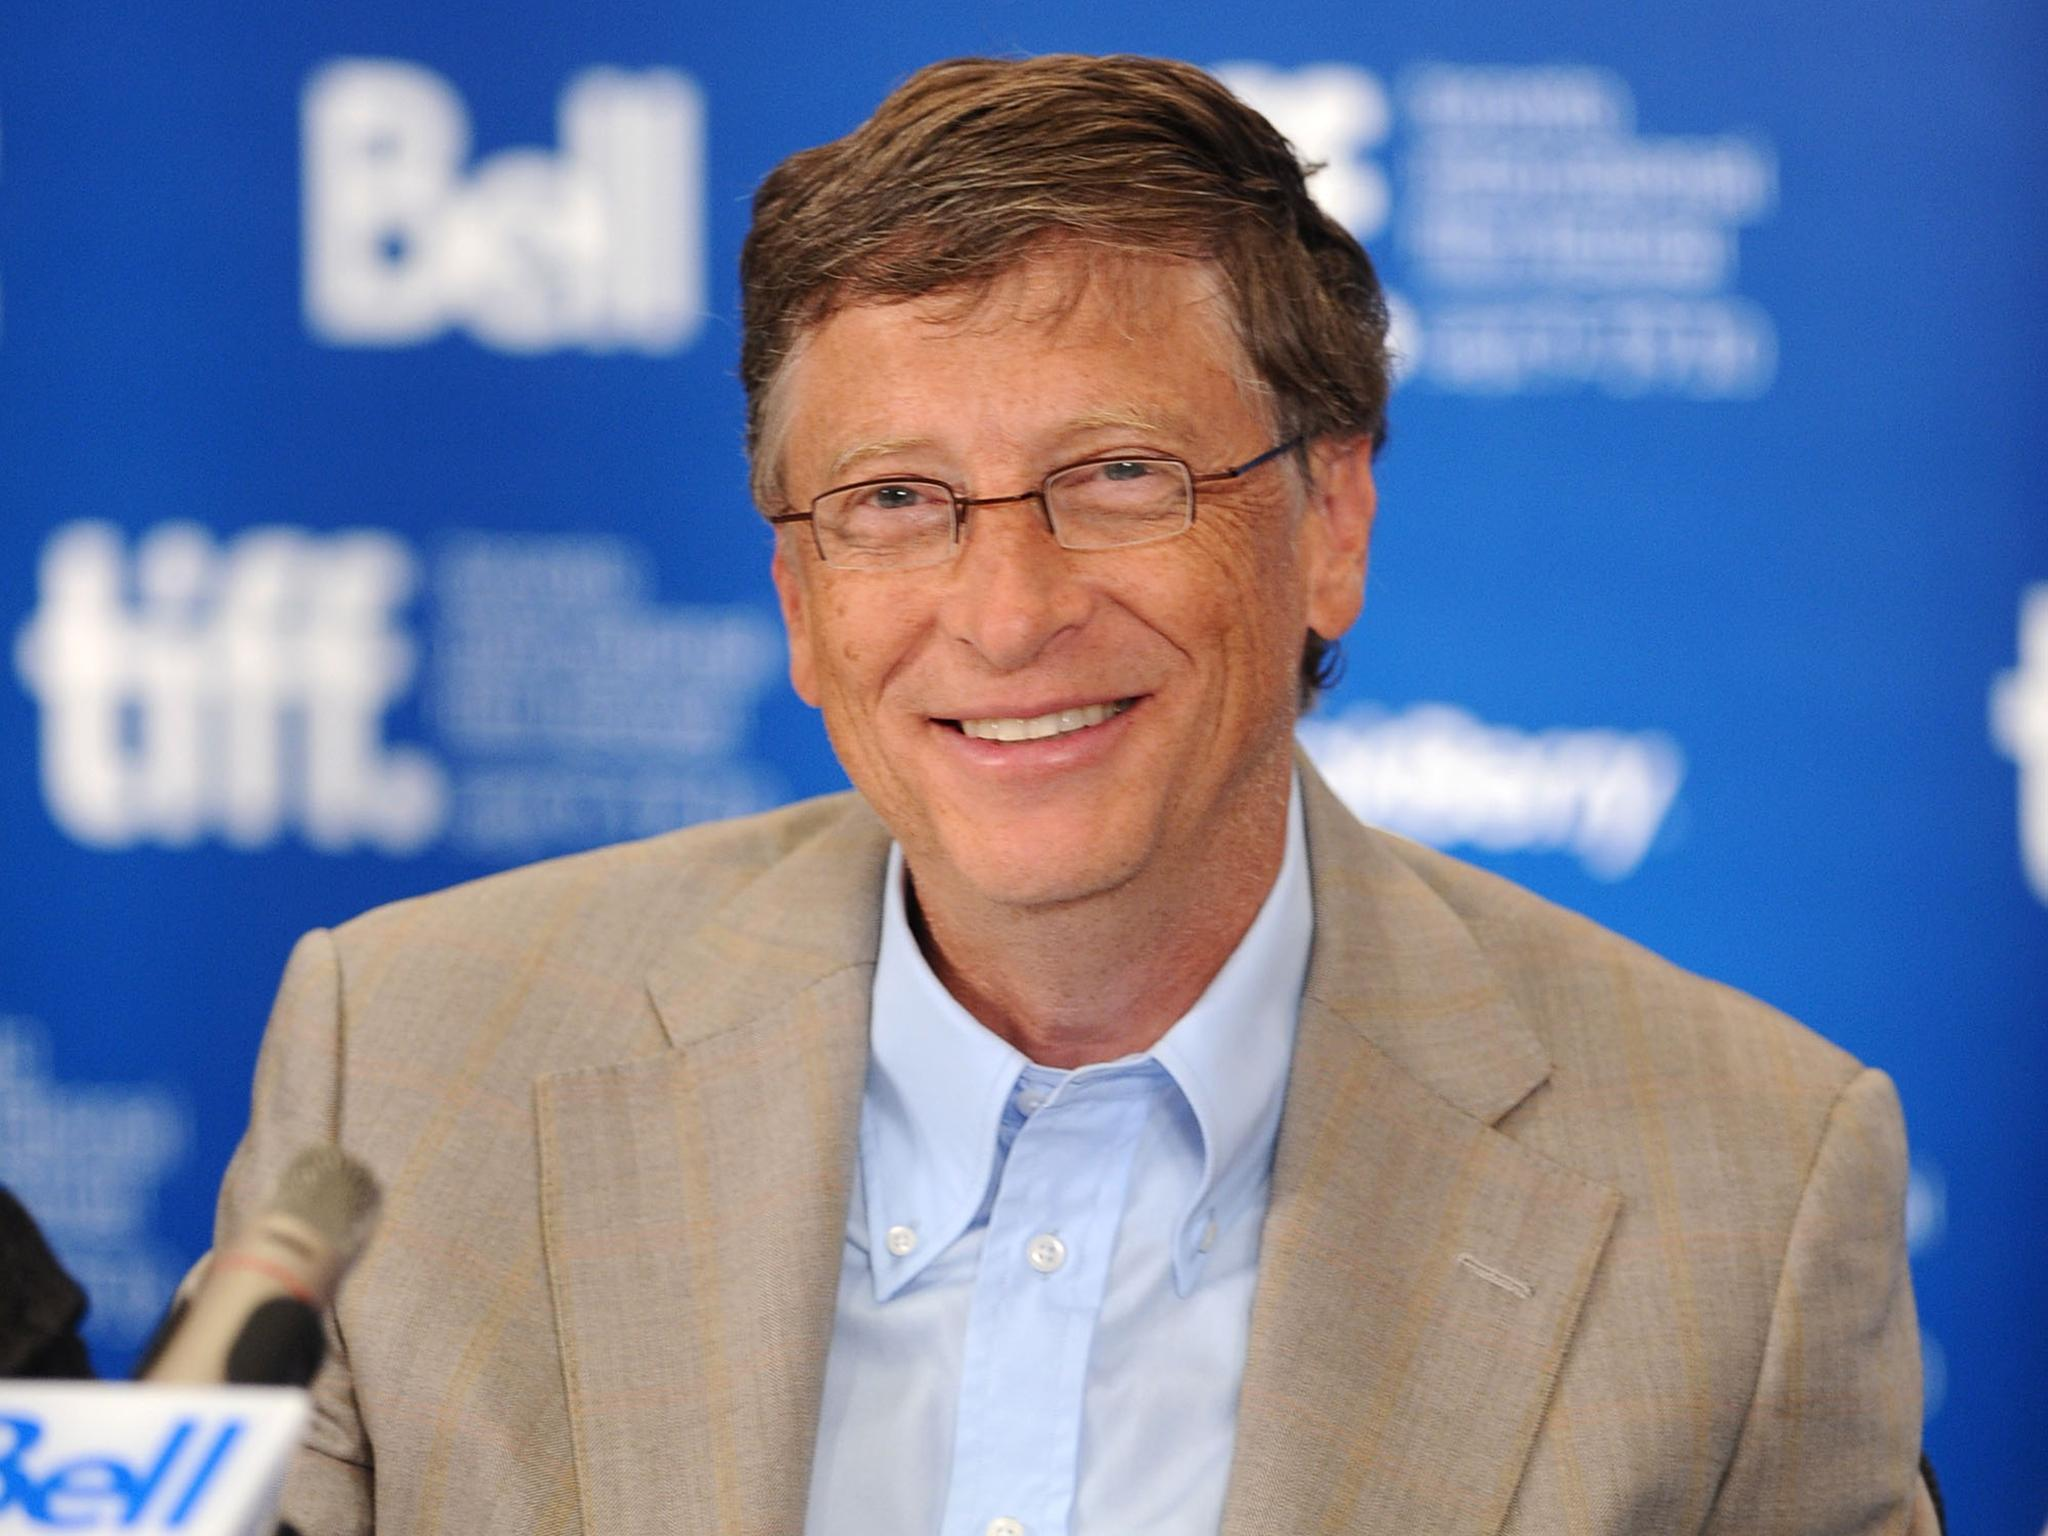 Advice Bill Gates would give to his 19-year-old self forecasting